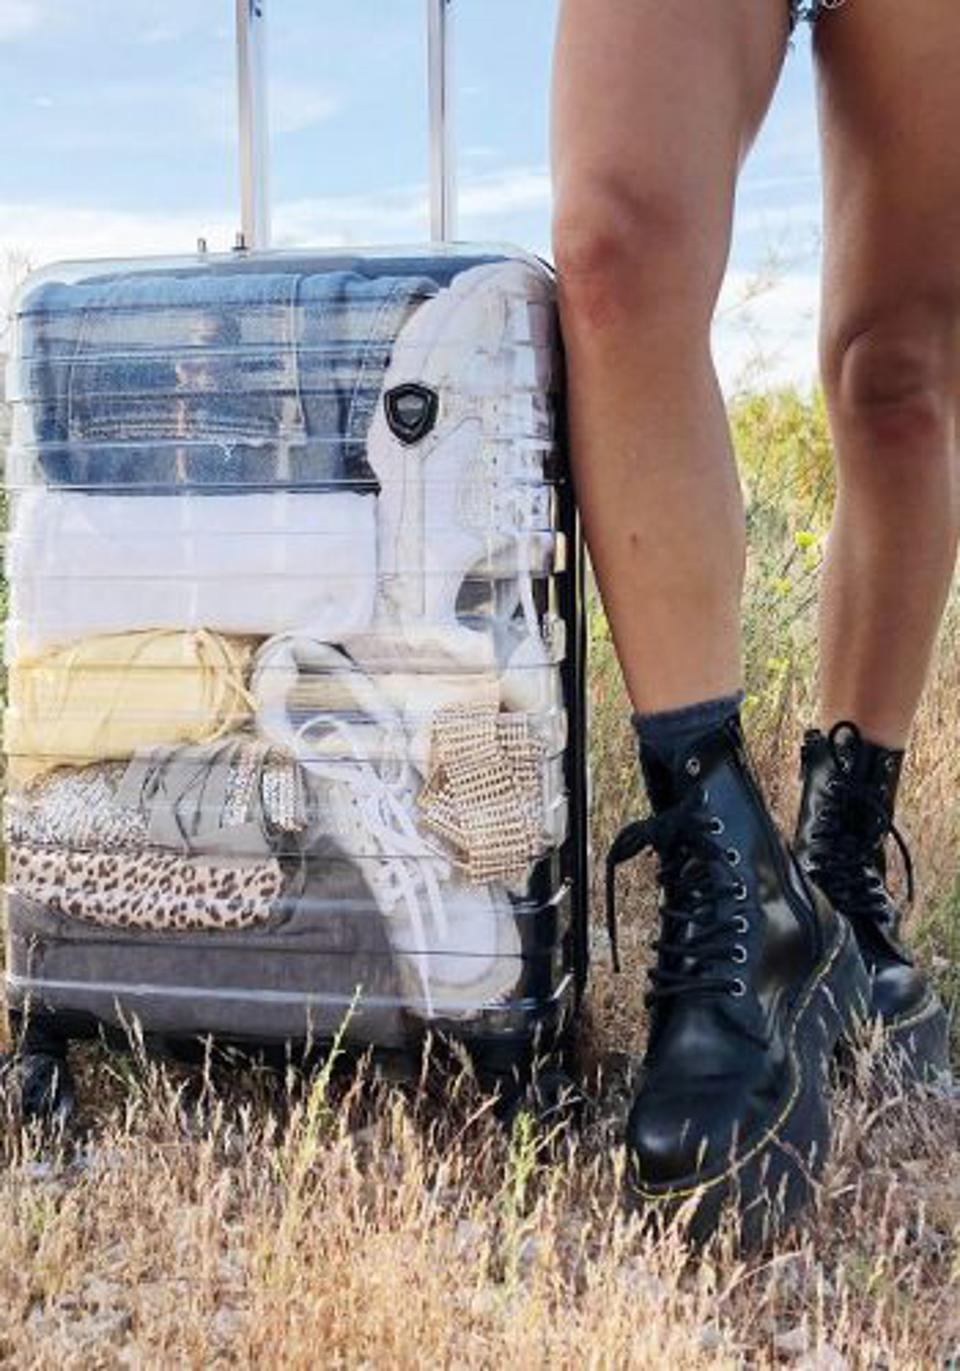 The Millennial Special Edition Luggage from Traveller's Choice